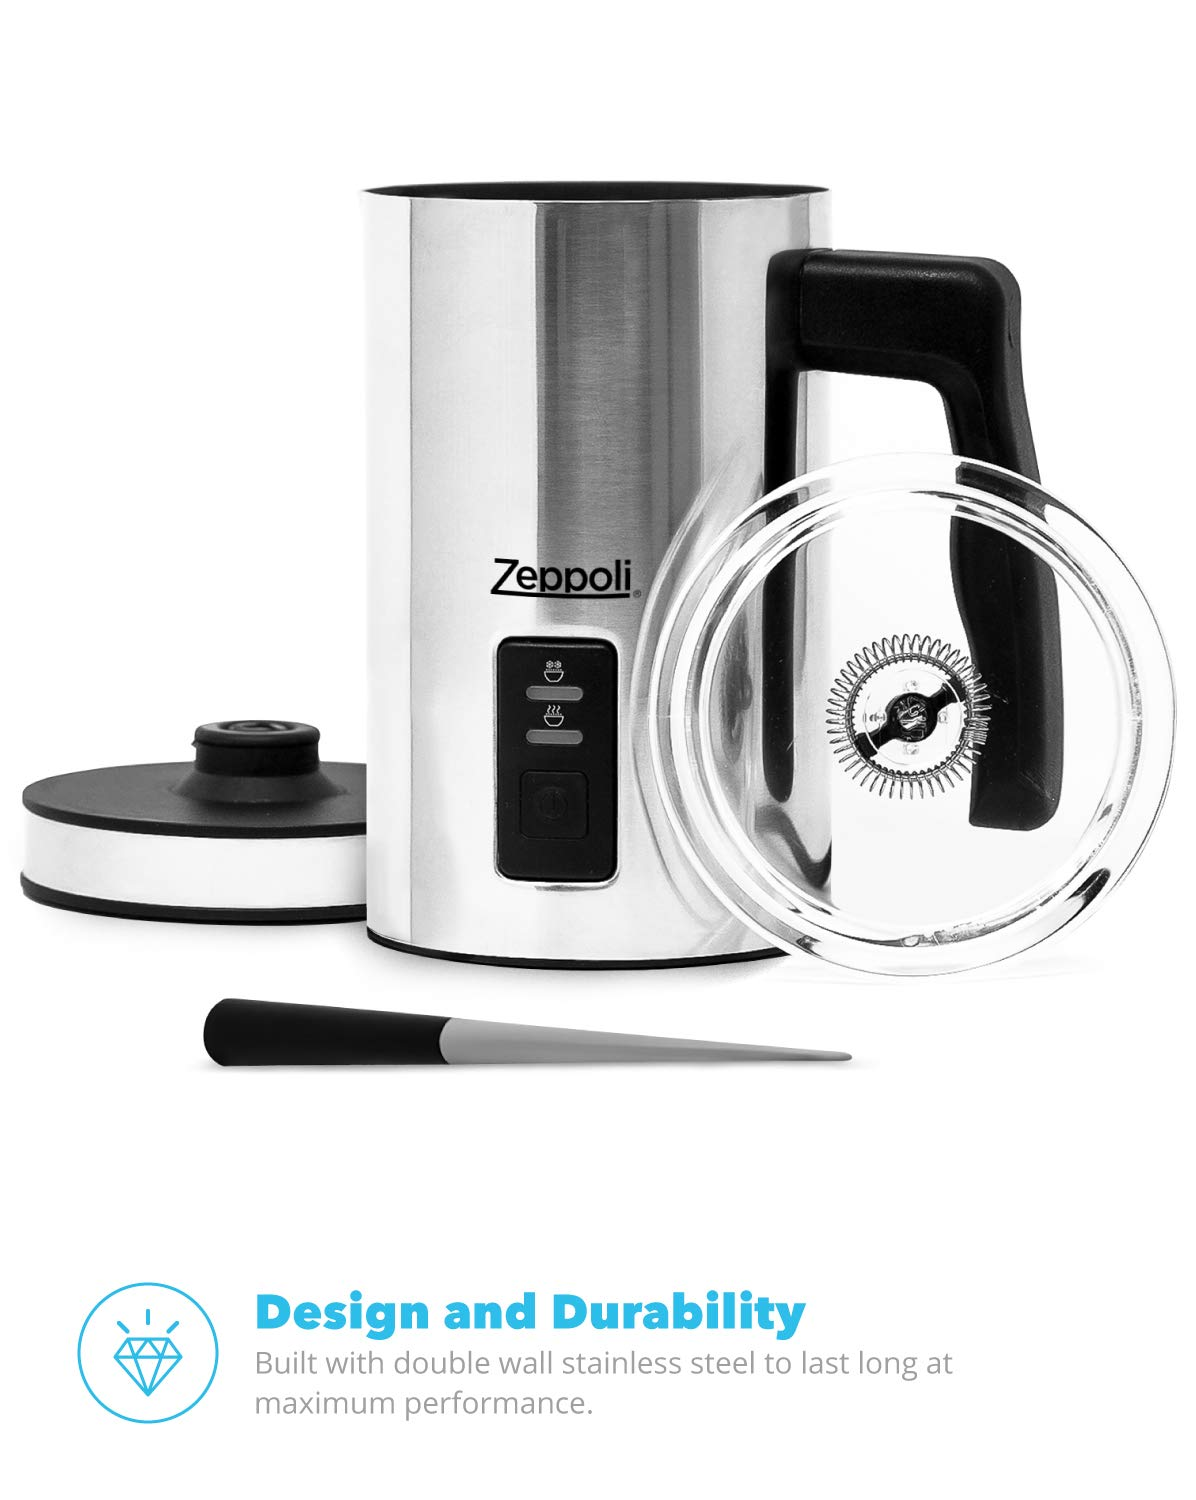 Zeppoli Milk Frother and Warmer - Automatic Milk Heater, Electric Milk Steamer and Milk Foamer | Great as a Latte Frother and Cappuccino Maker for Coffee and Hot Chocolate - Comes With a Silicone Scraper by Zeppoli (Image #8)